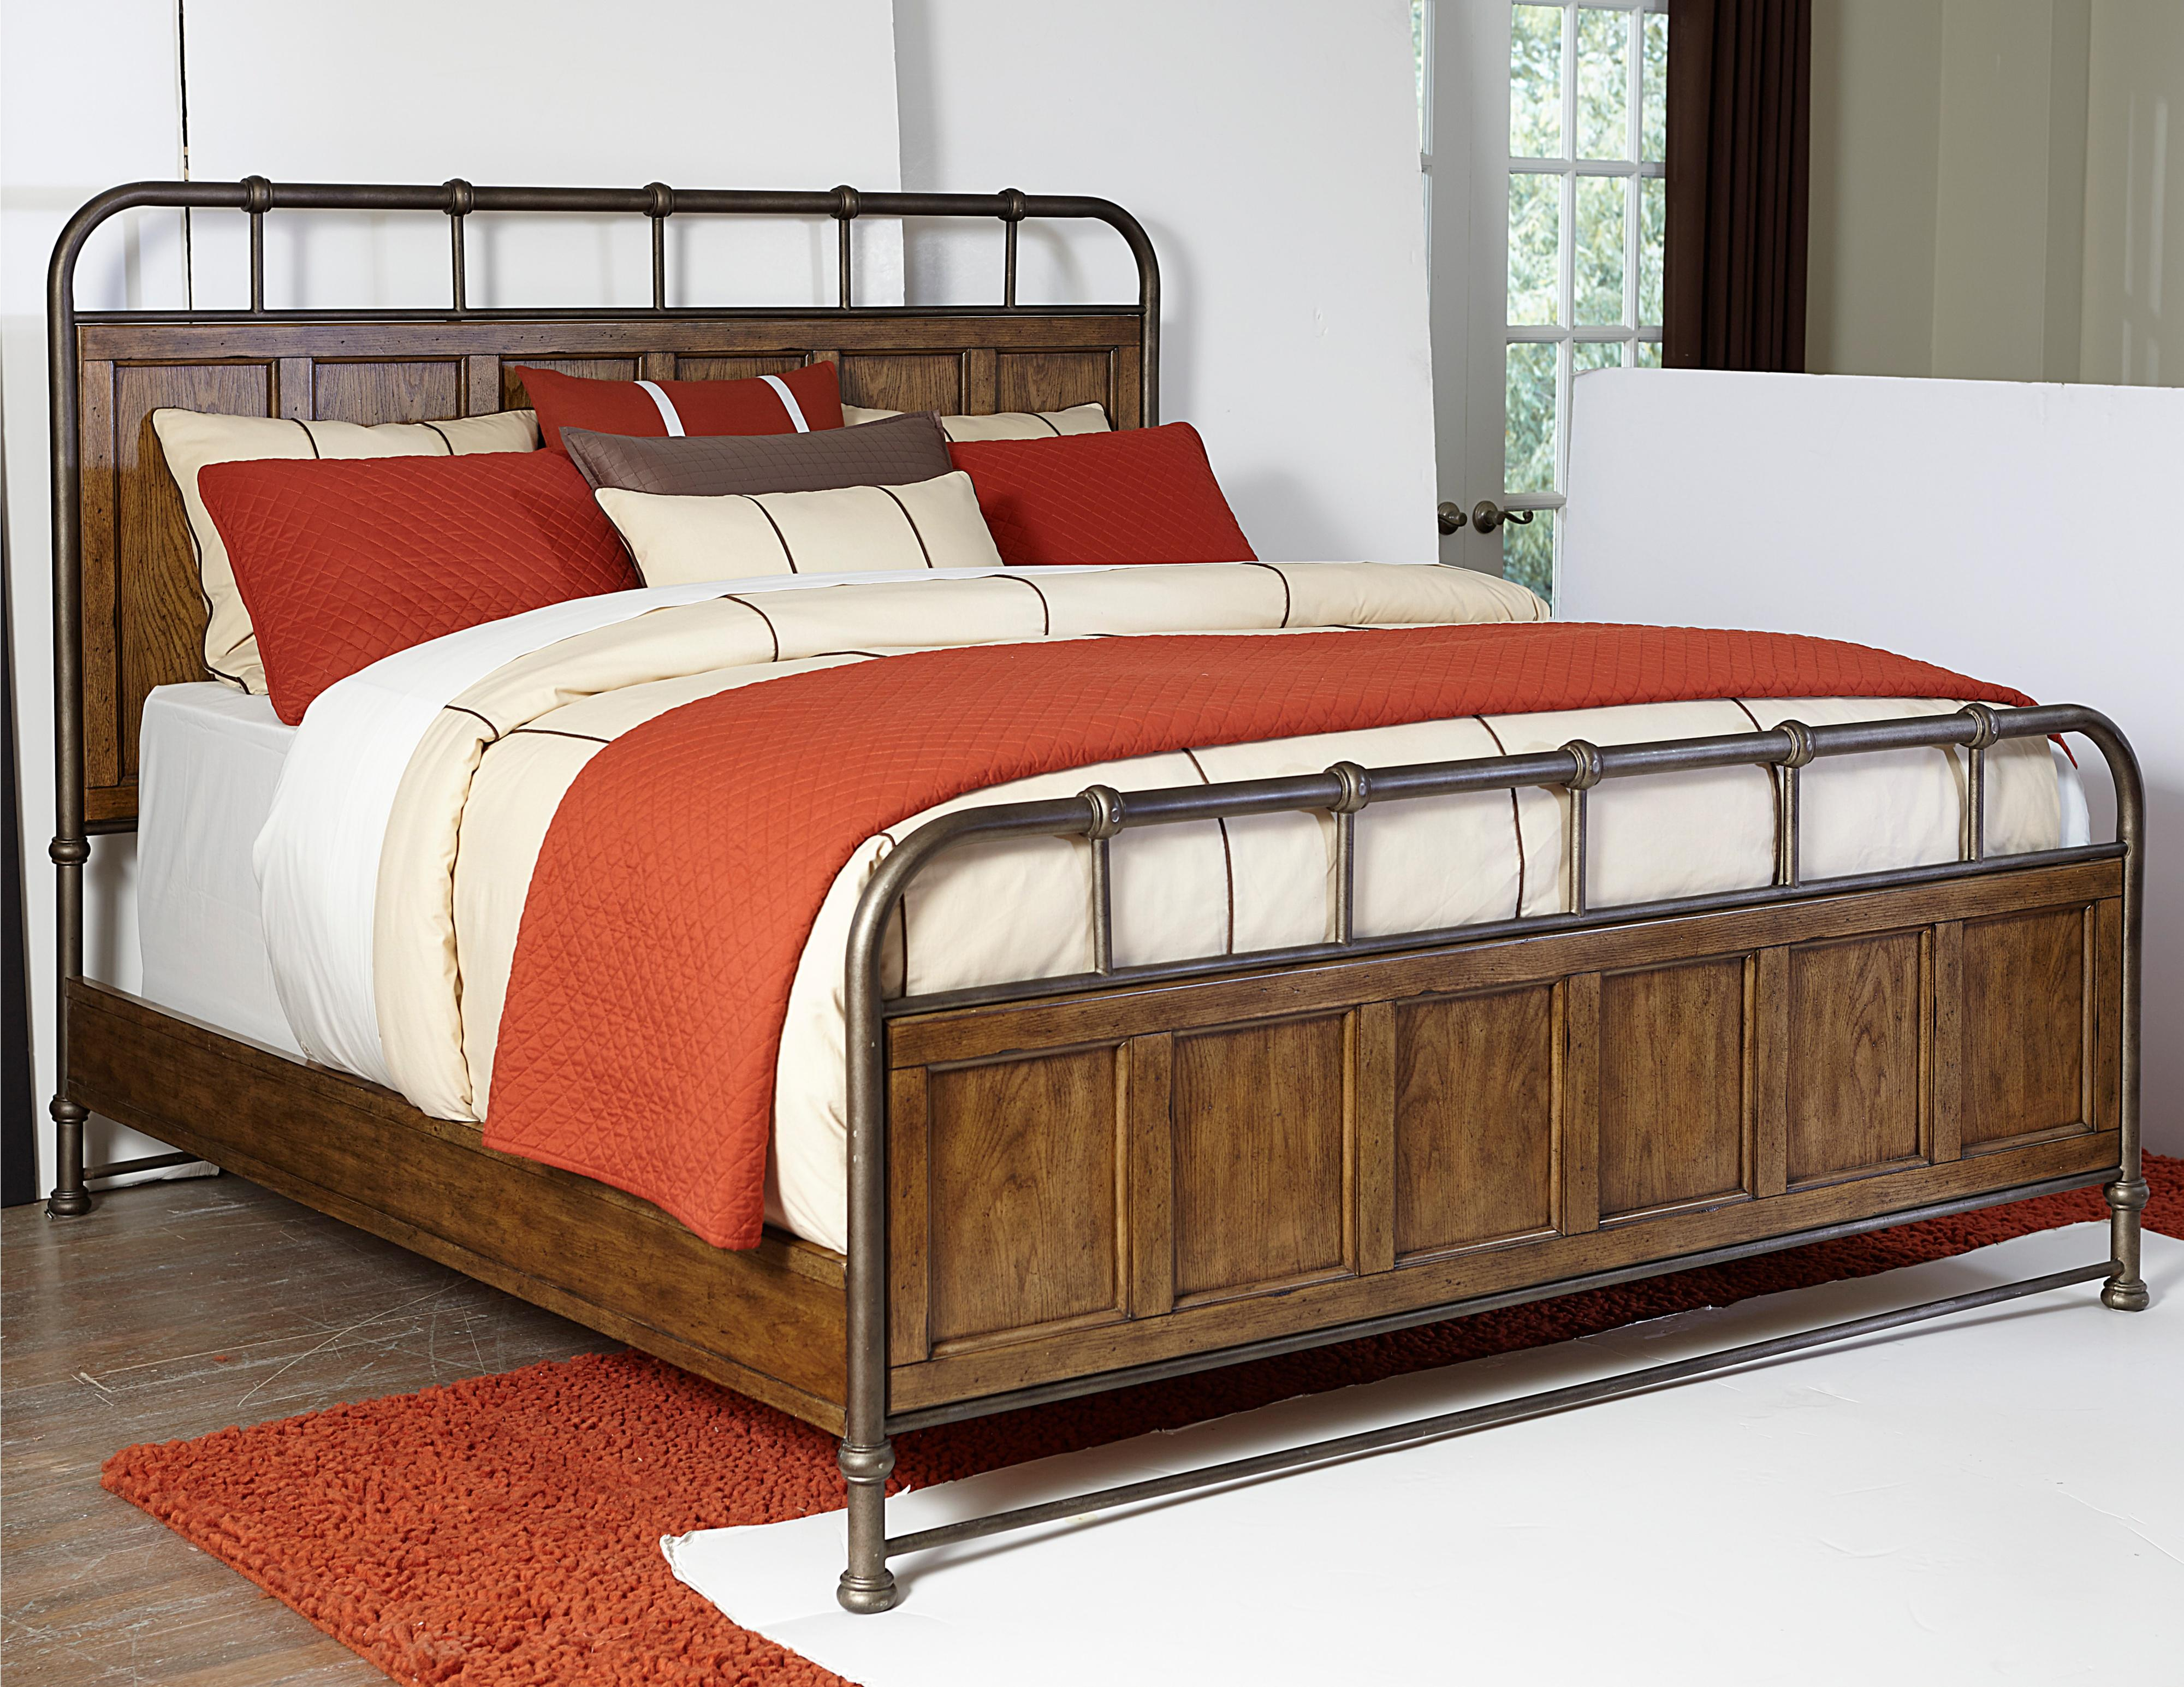 New Vintage 4808 By Broyhill Furniture Baer 39 S Furniture Broyhill Furniture New Vintage Dealer